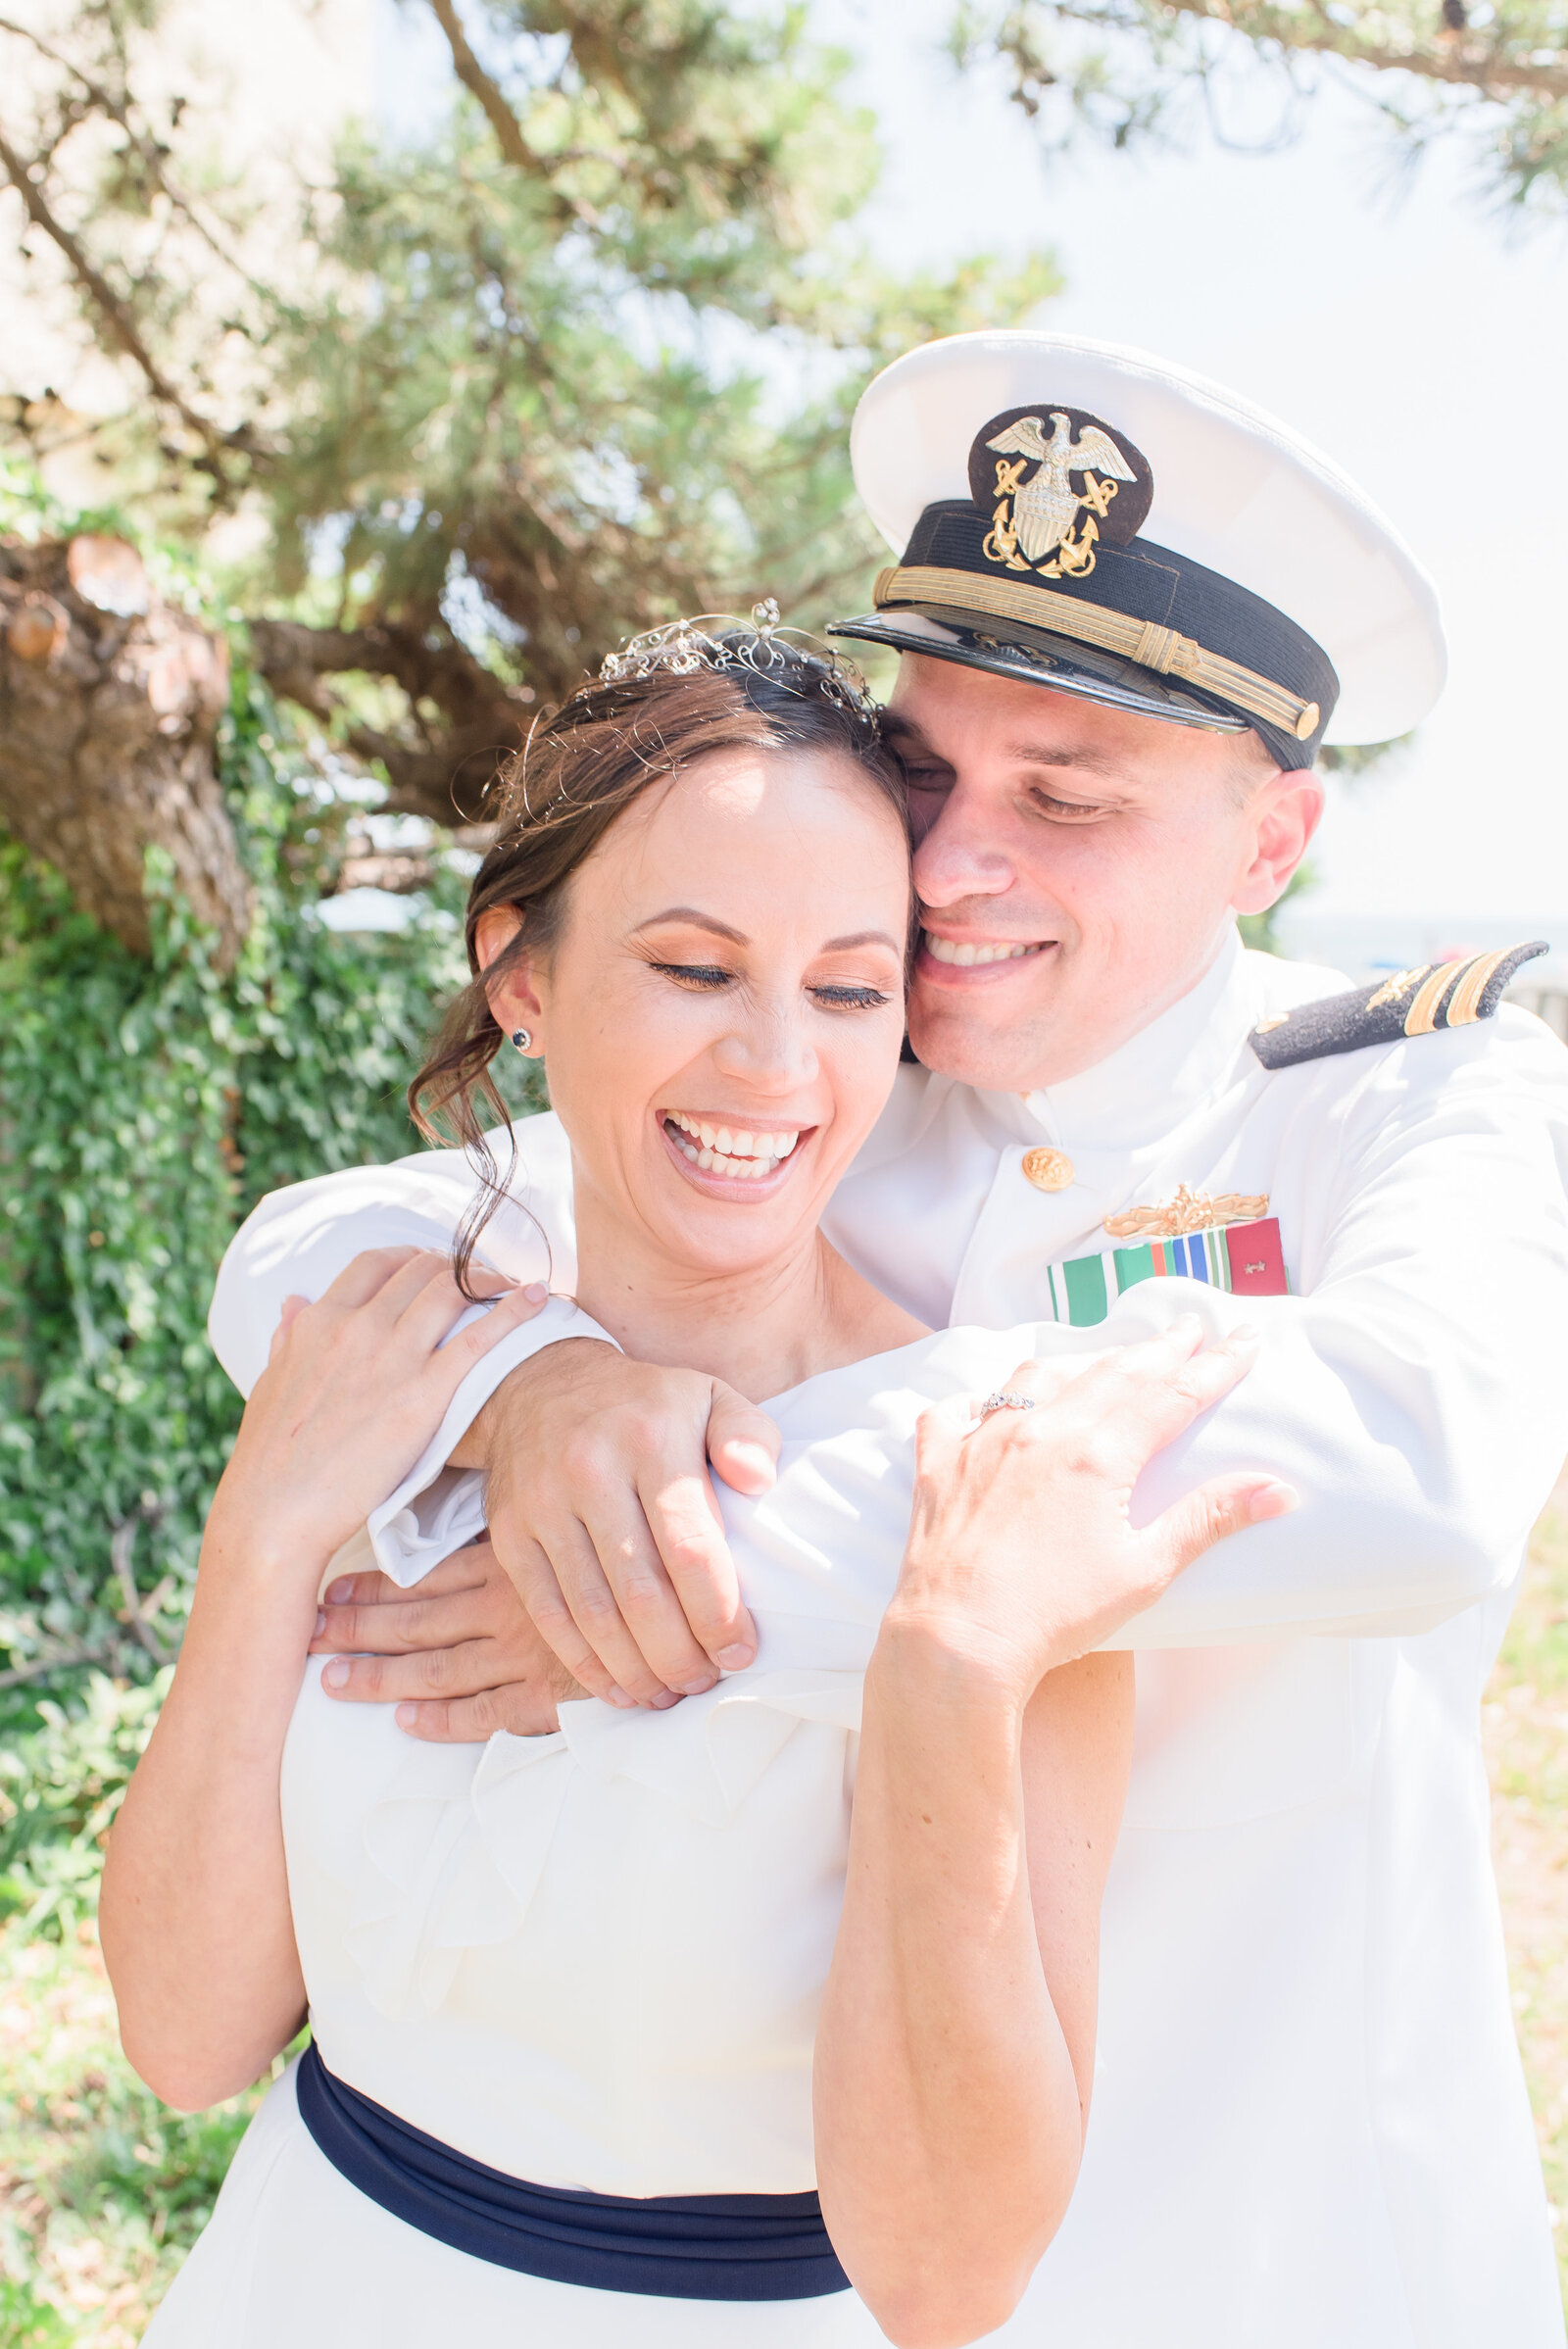 California Wedding Photographer, groom in military uniform wrapping his arms around bride